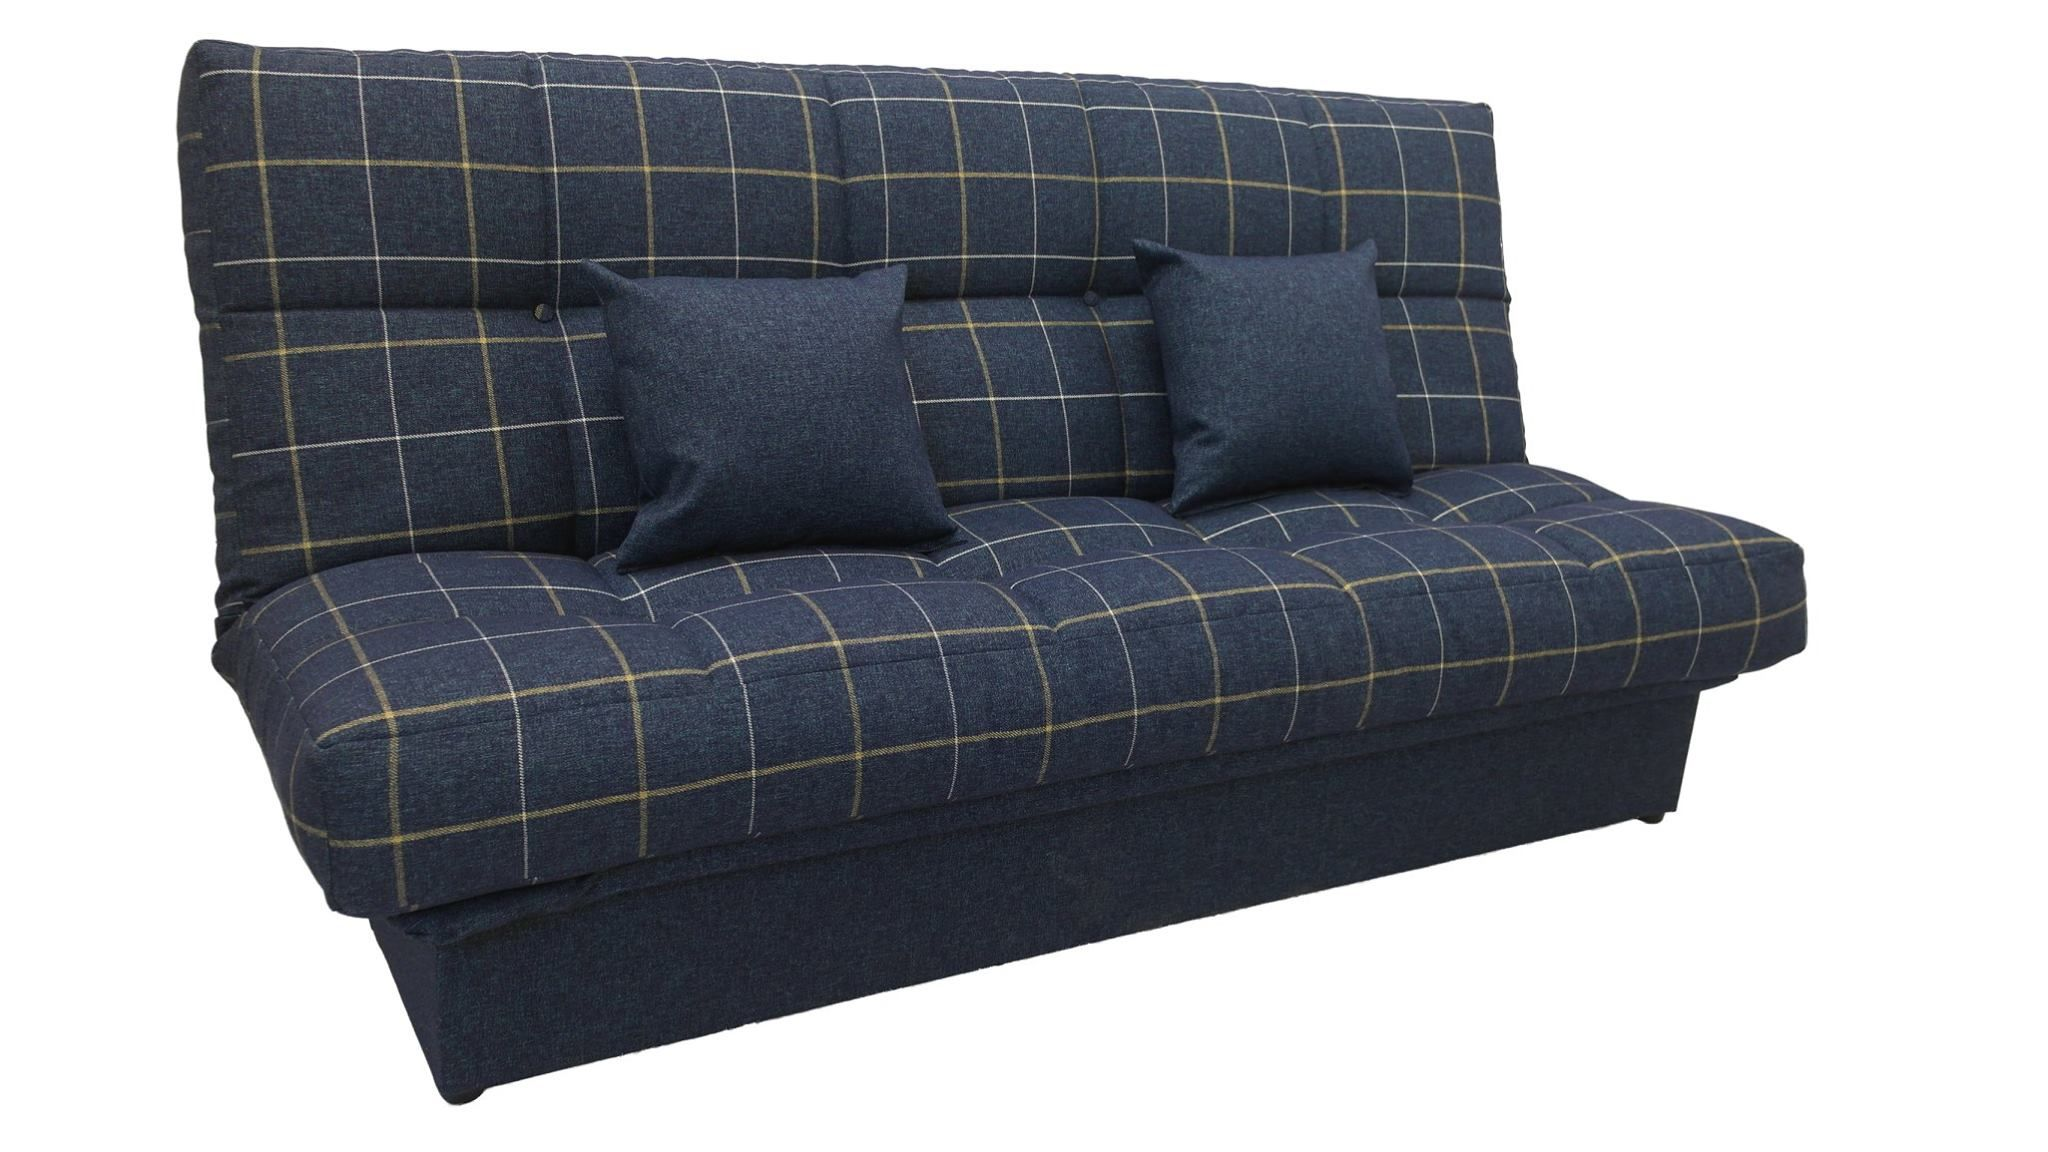 Cool Tenbury 3 Seat Clic Clac Style Sofa Bed Quick And Simple Home Interior And Landscaping Ologienasavecom